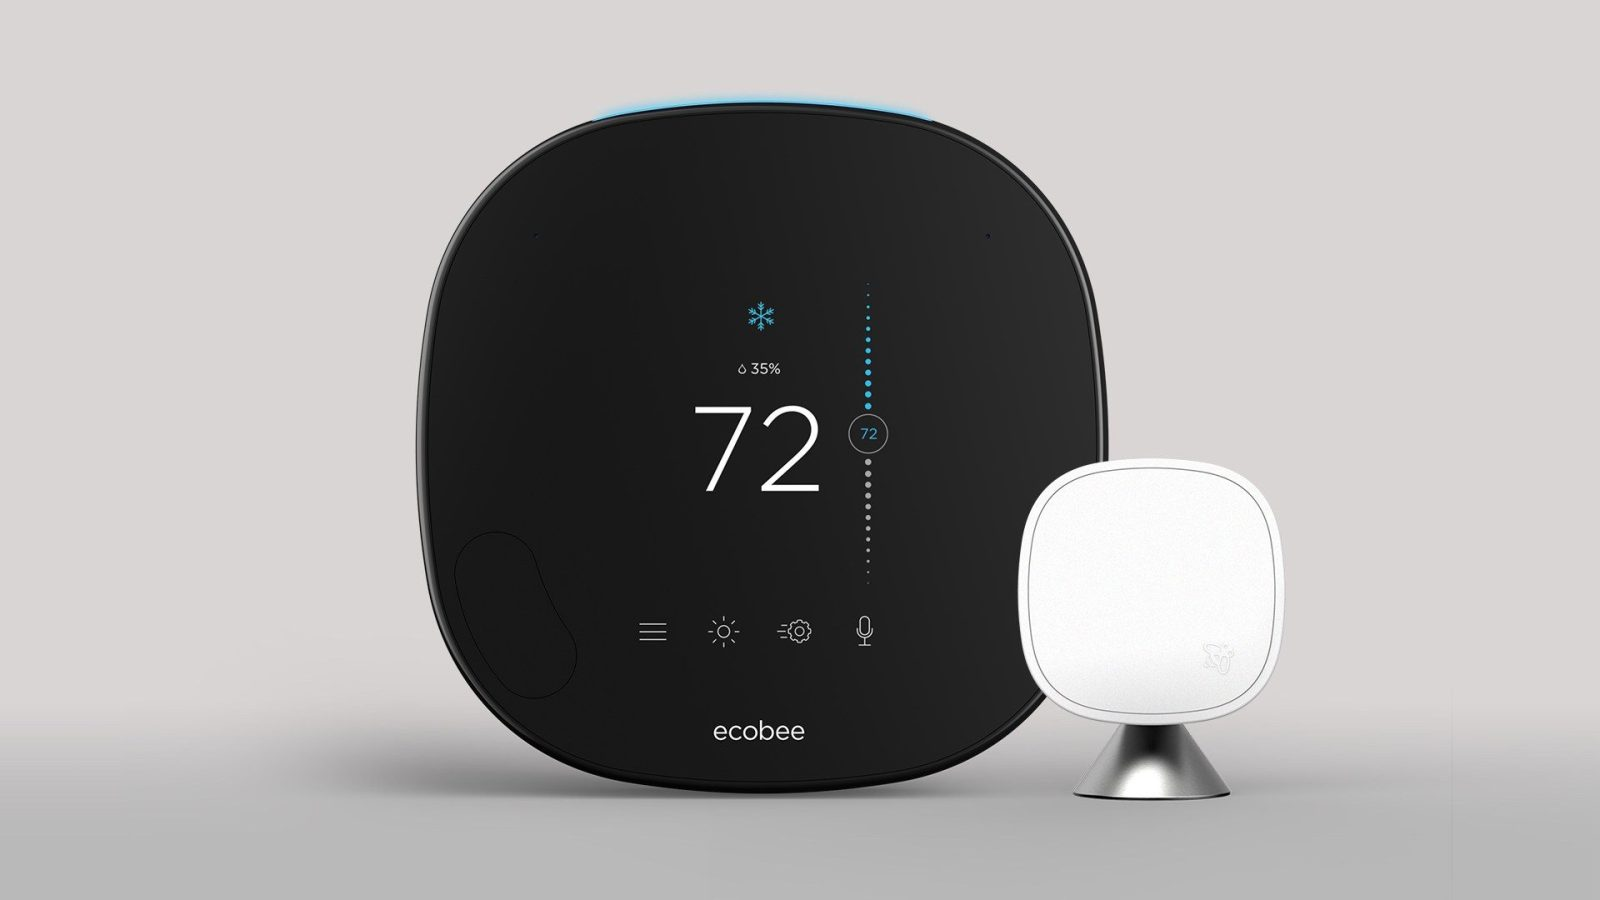 ecobee's new SmartThermostat with HomeKit sees first discount to $235 shipped